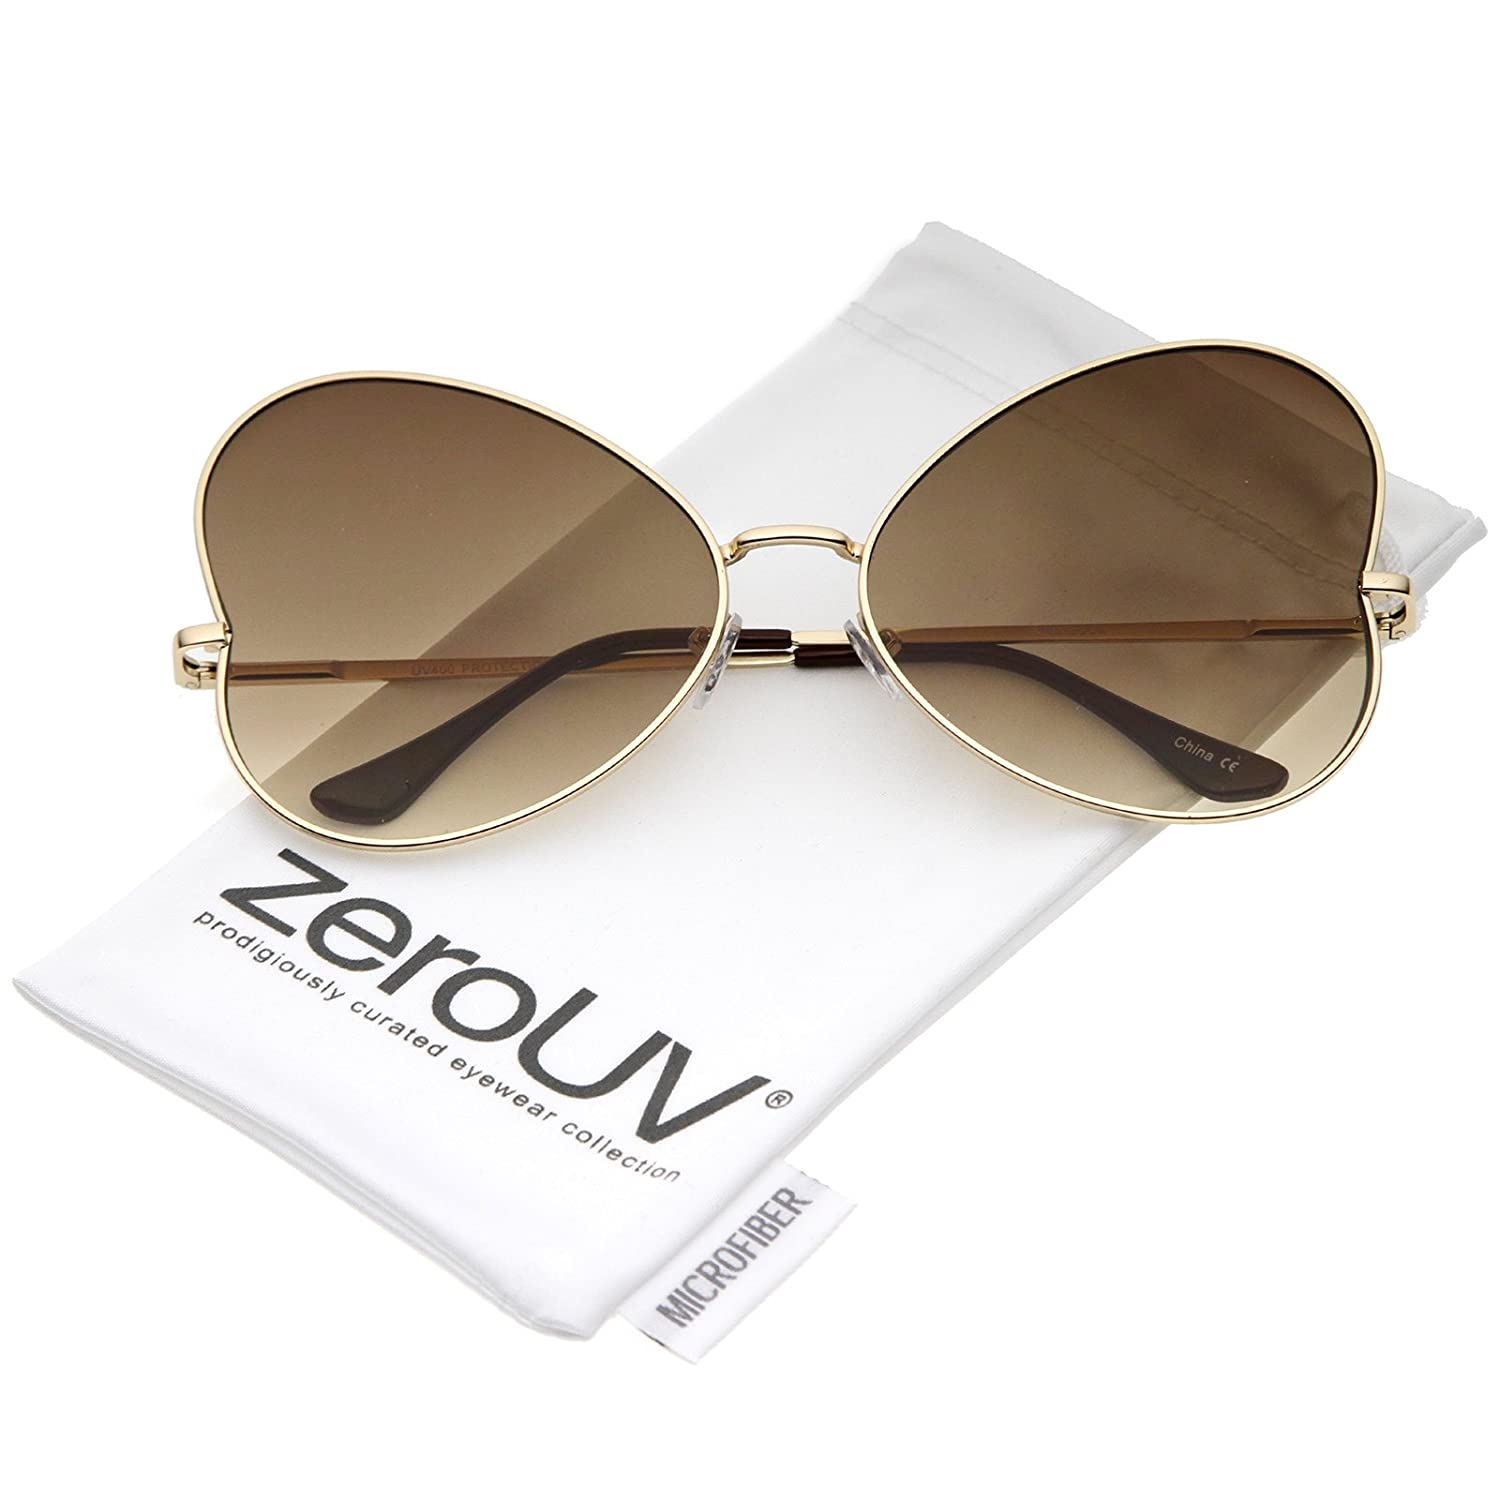 9c3dcef8ddc2 Amazon.com  zeroUV - Women s Oversize Ultra Slim Temple Gradient Flat Lens  Butterfly Sunglasses 61mm (Gold Brown Gradient)  Clothing